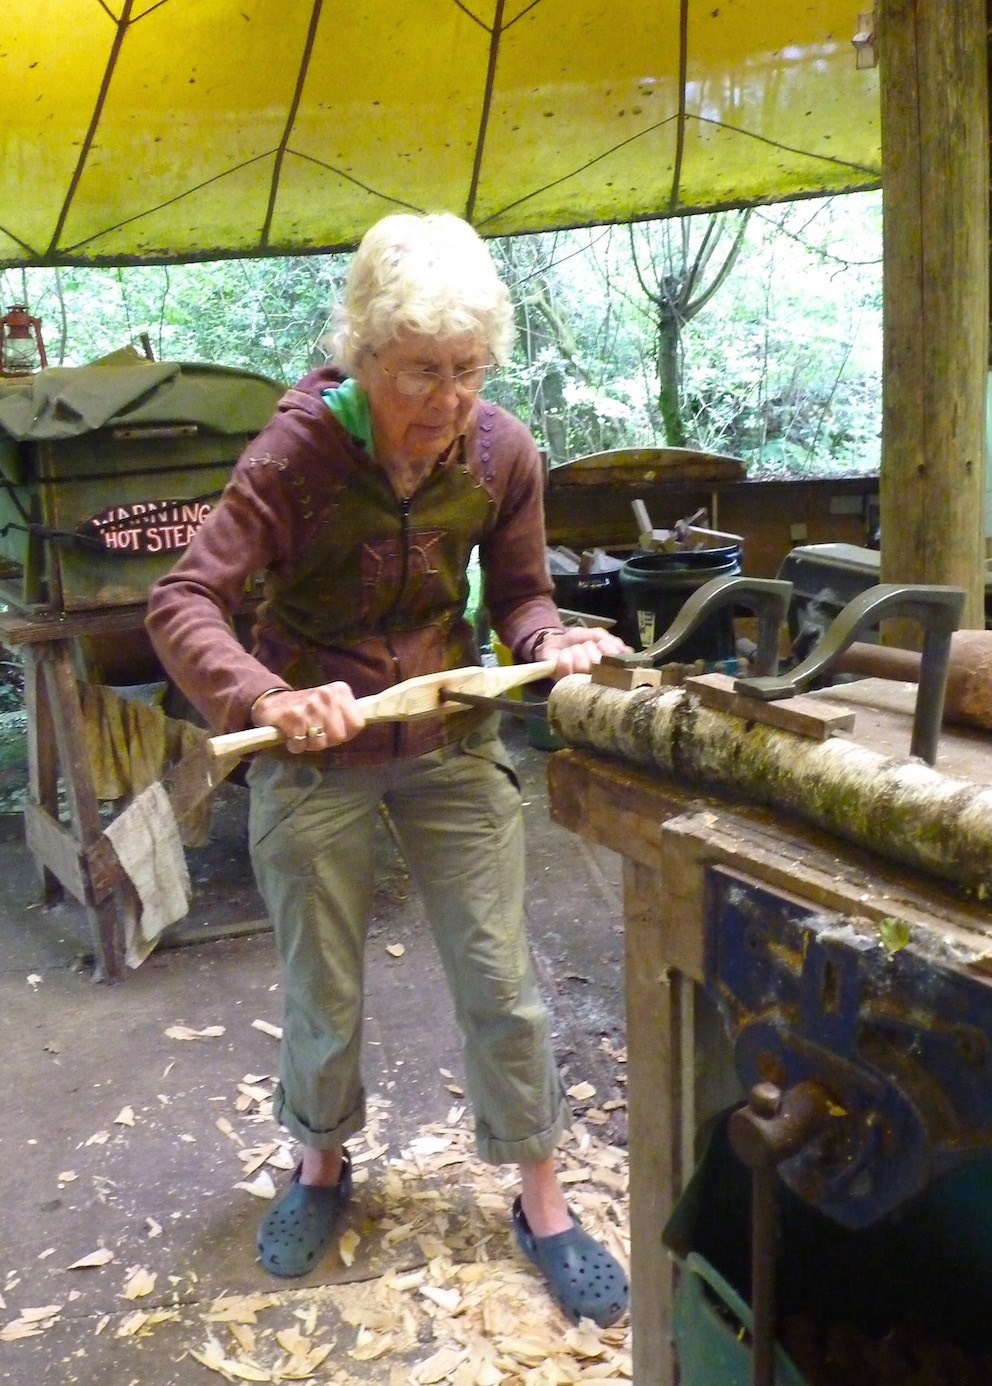 Jane always up for having a go! - turning her skills to making a green wood shrink-pot